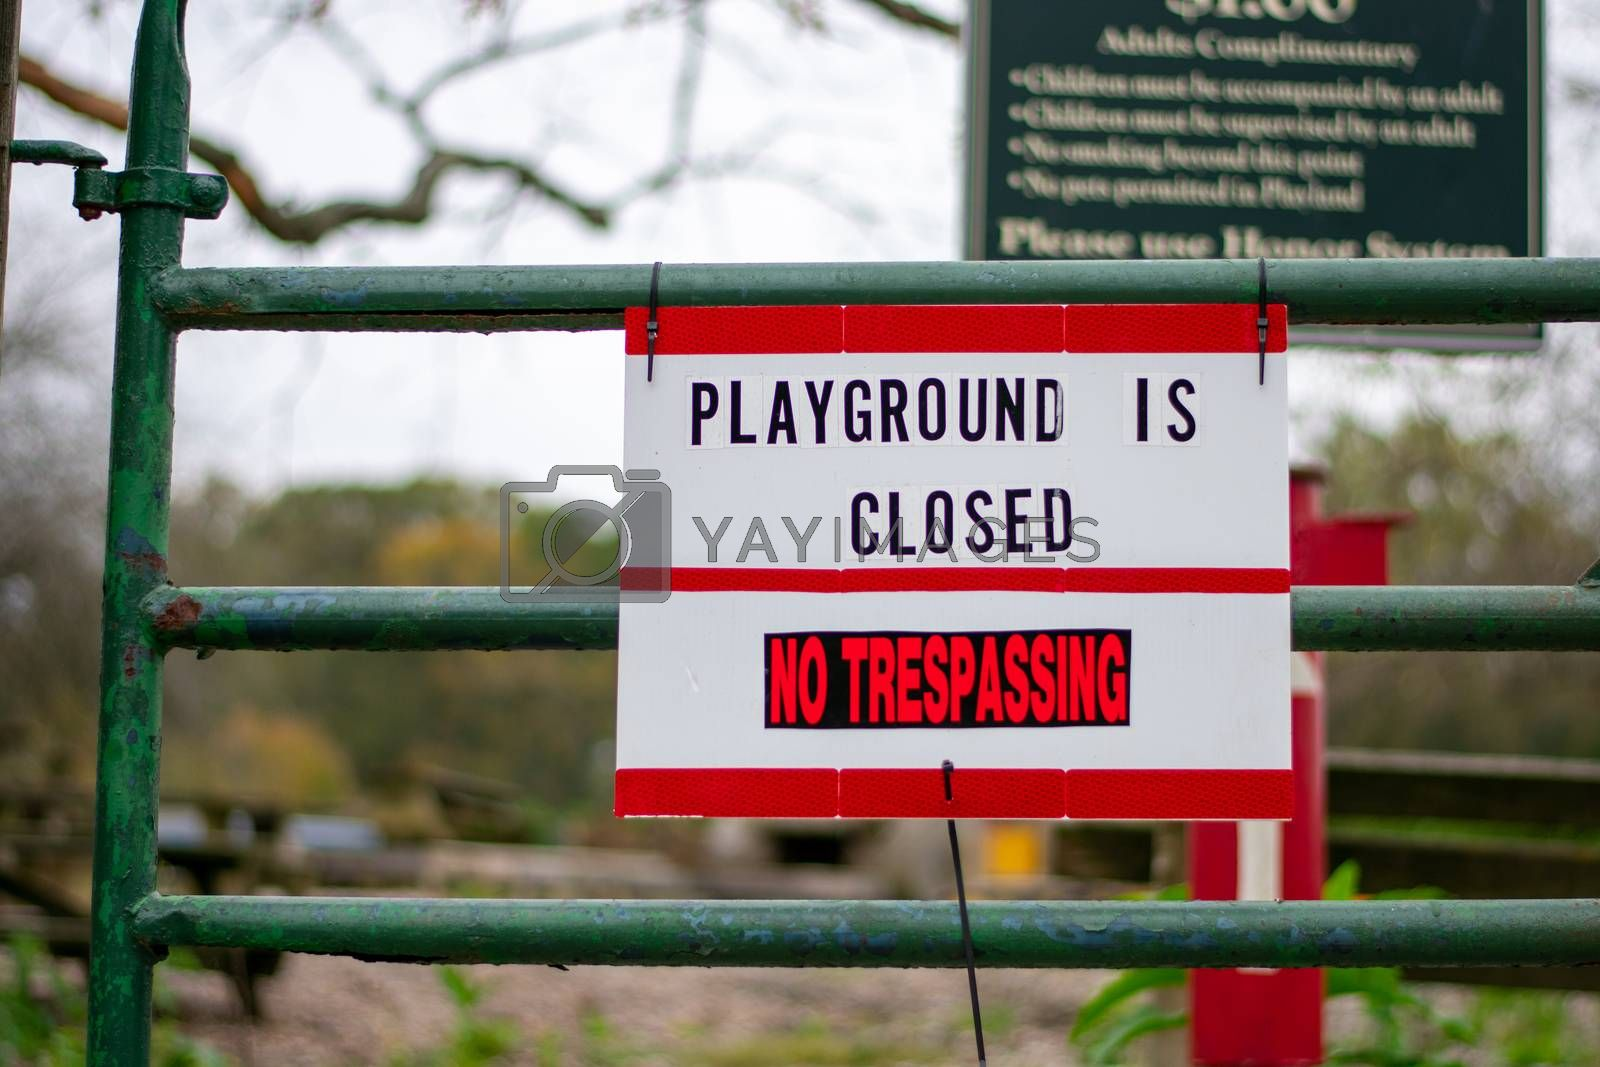 A Sign in Response to COVID-19 That Says the Playground is Closed and No Trespassing